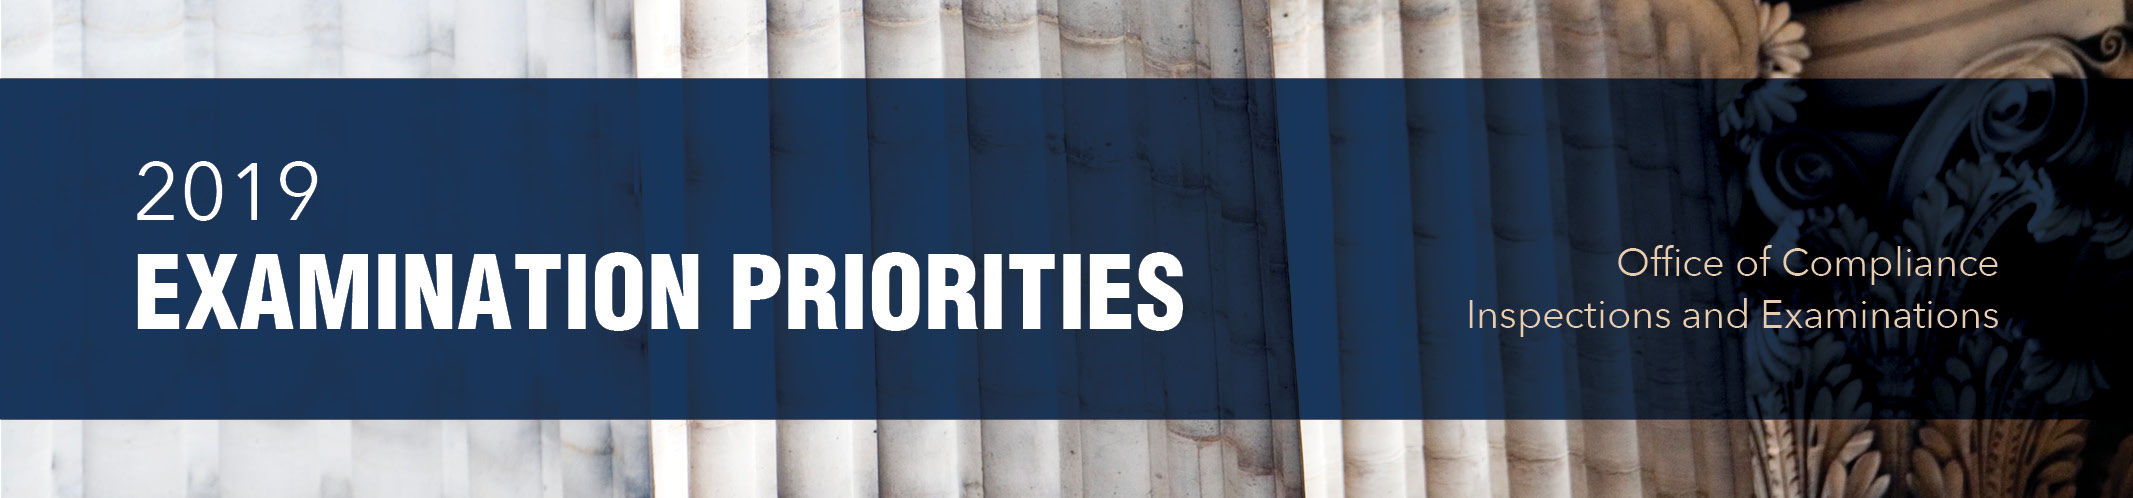 2019 Examination Priorities Header image